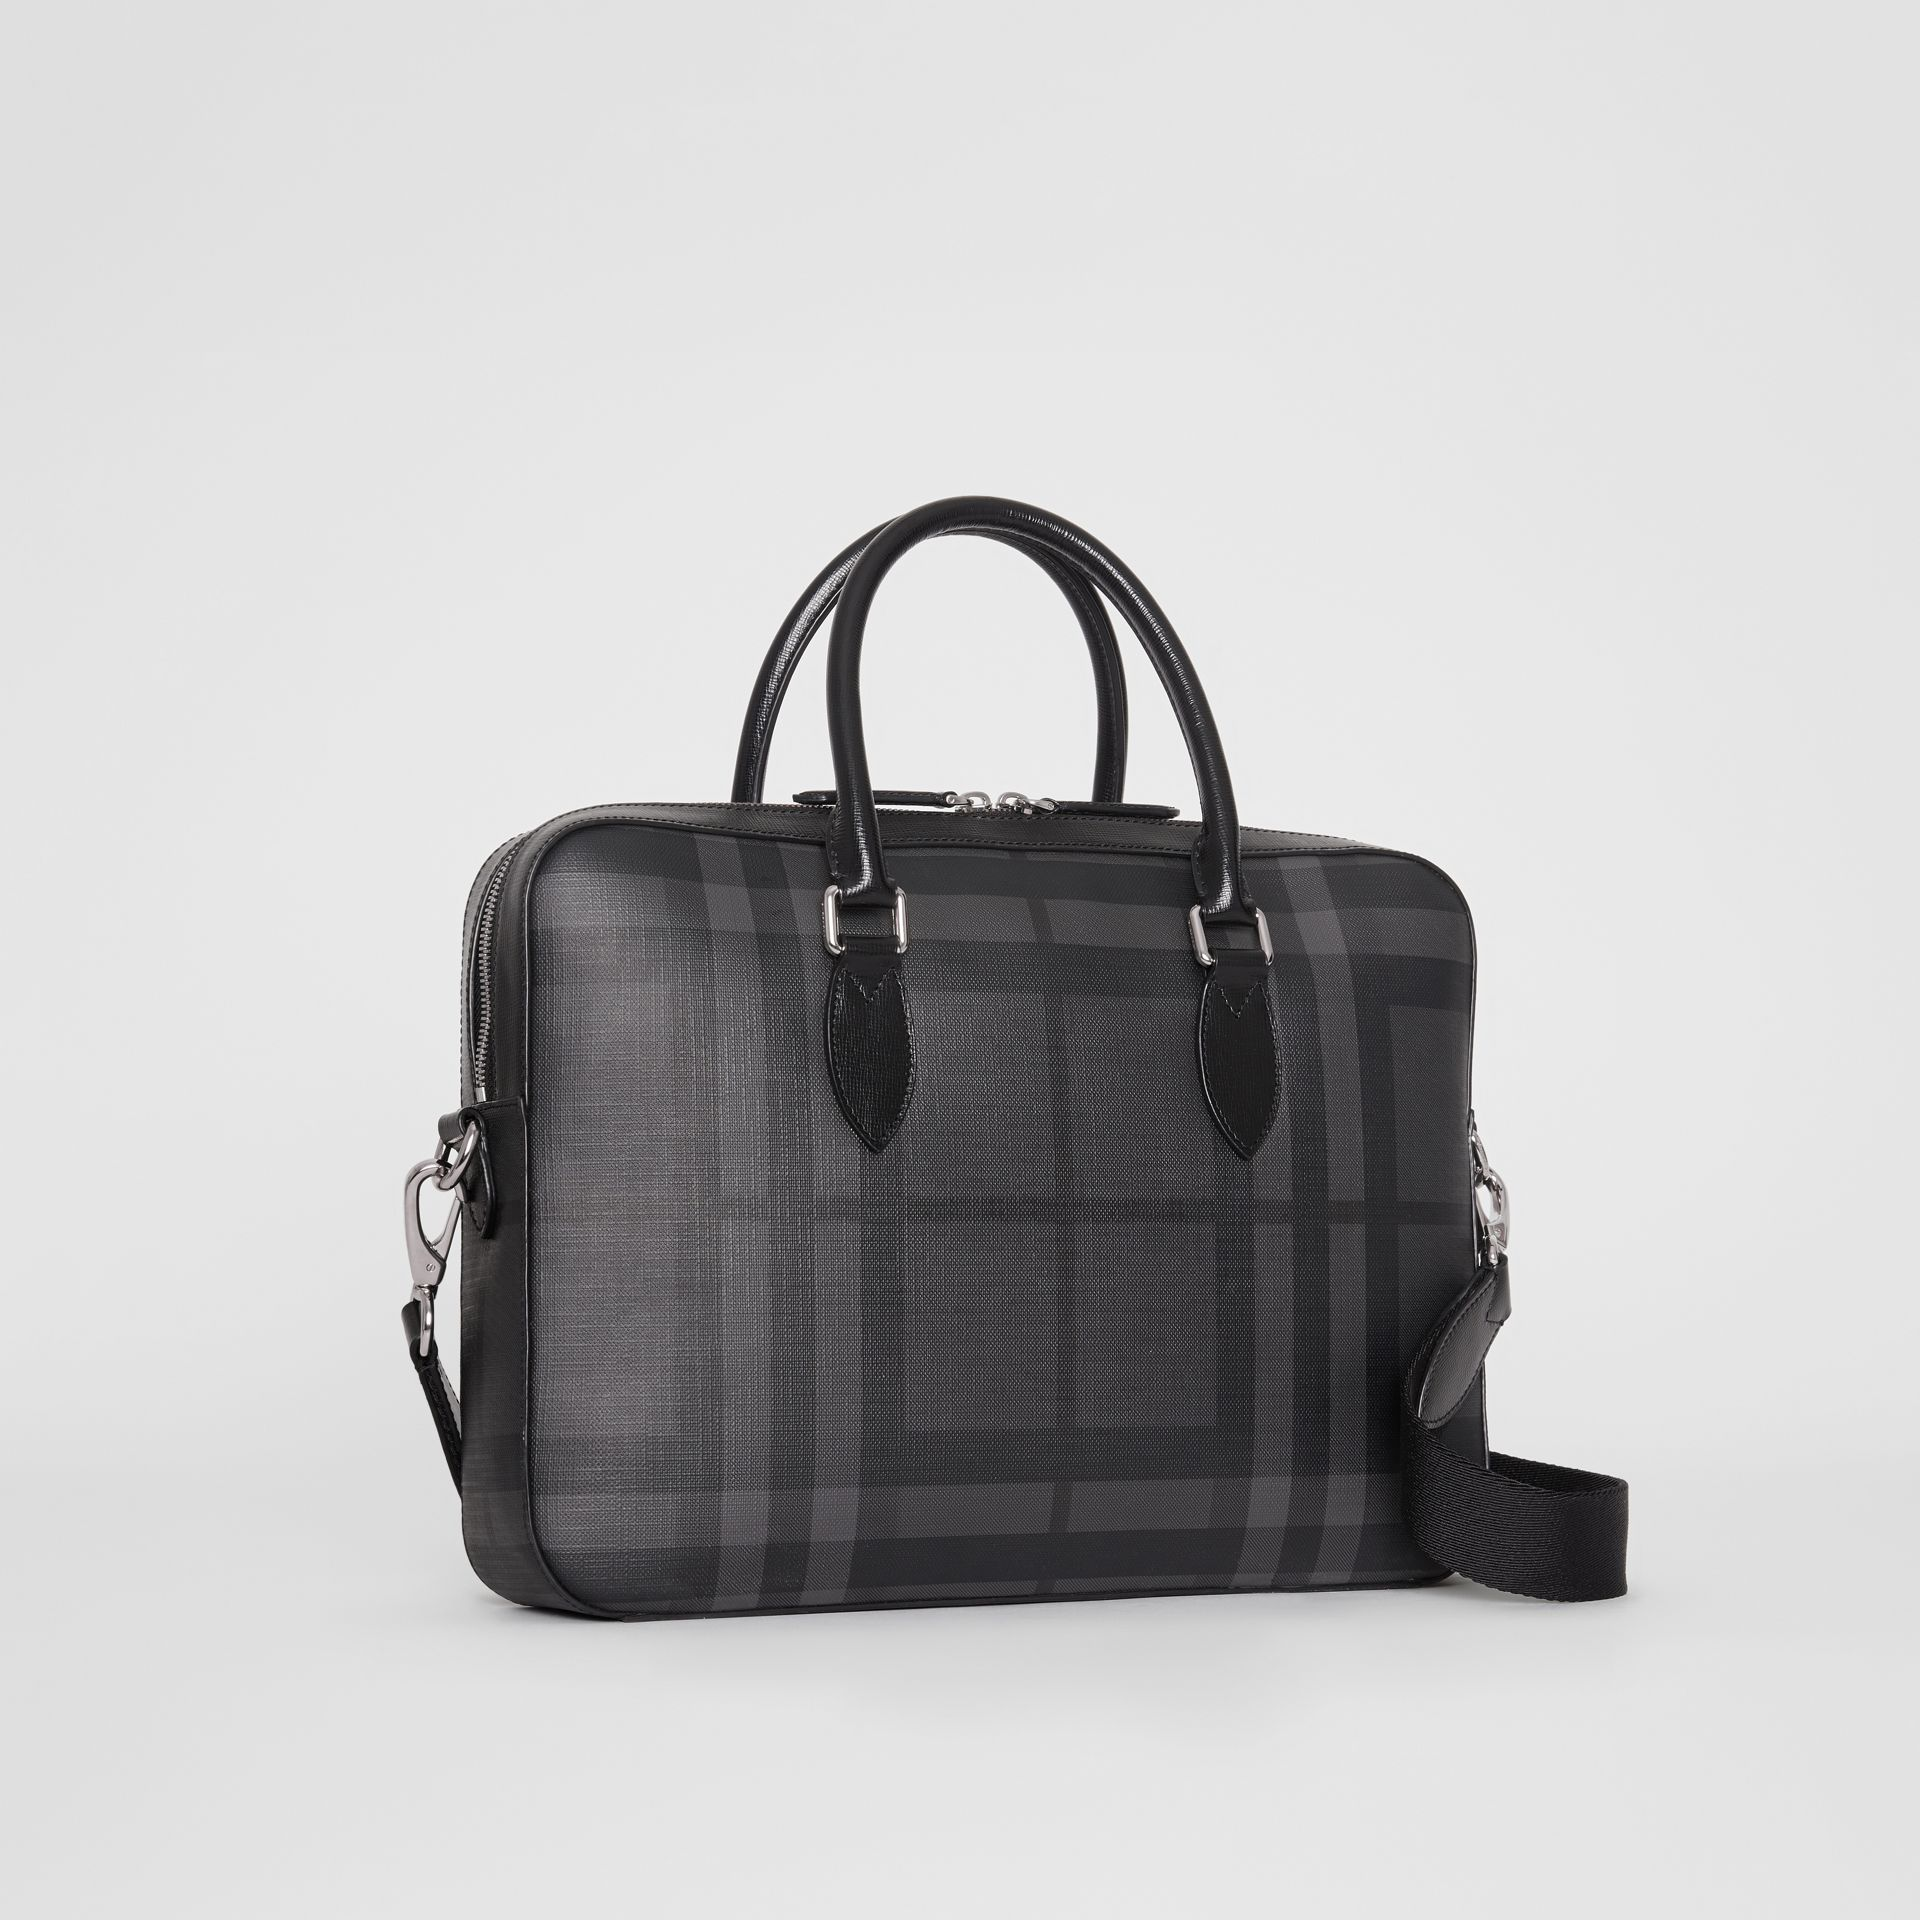 Sac The Barrow fin avec motif London check (Anthracite/noir) - Homme | Burberry Canada - photo de la galerie 6